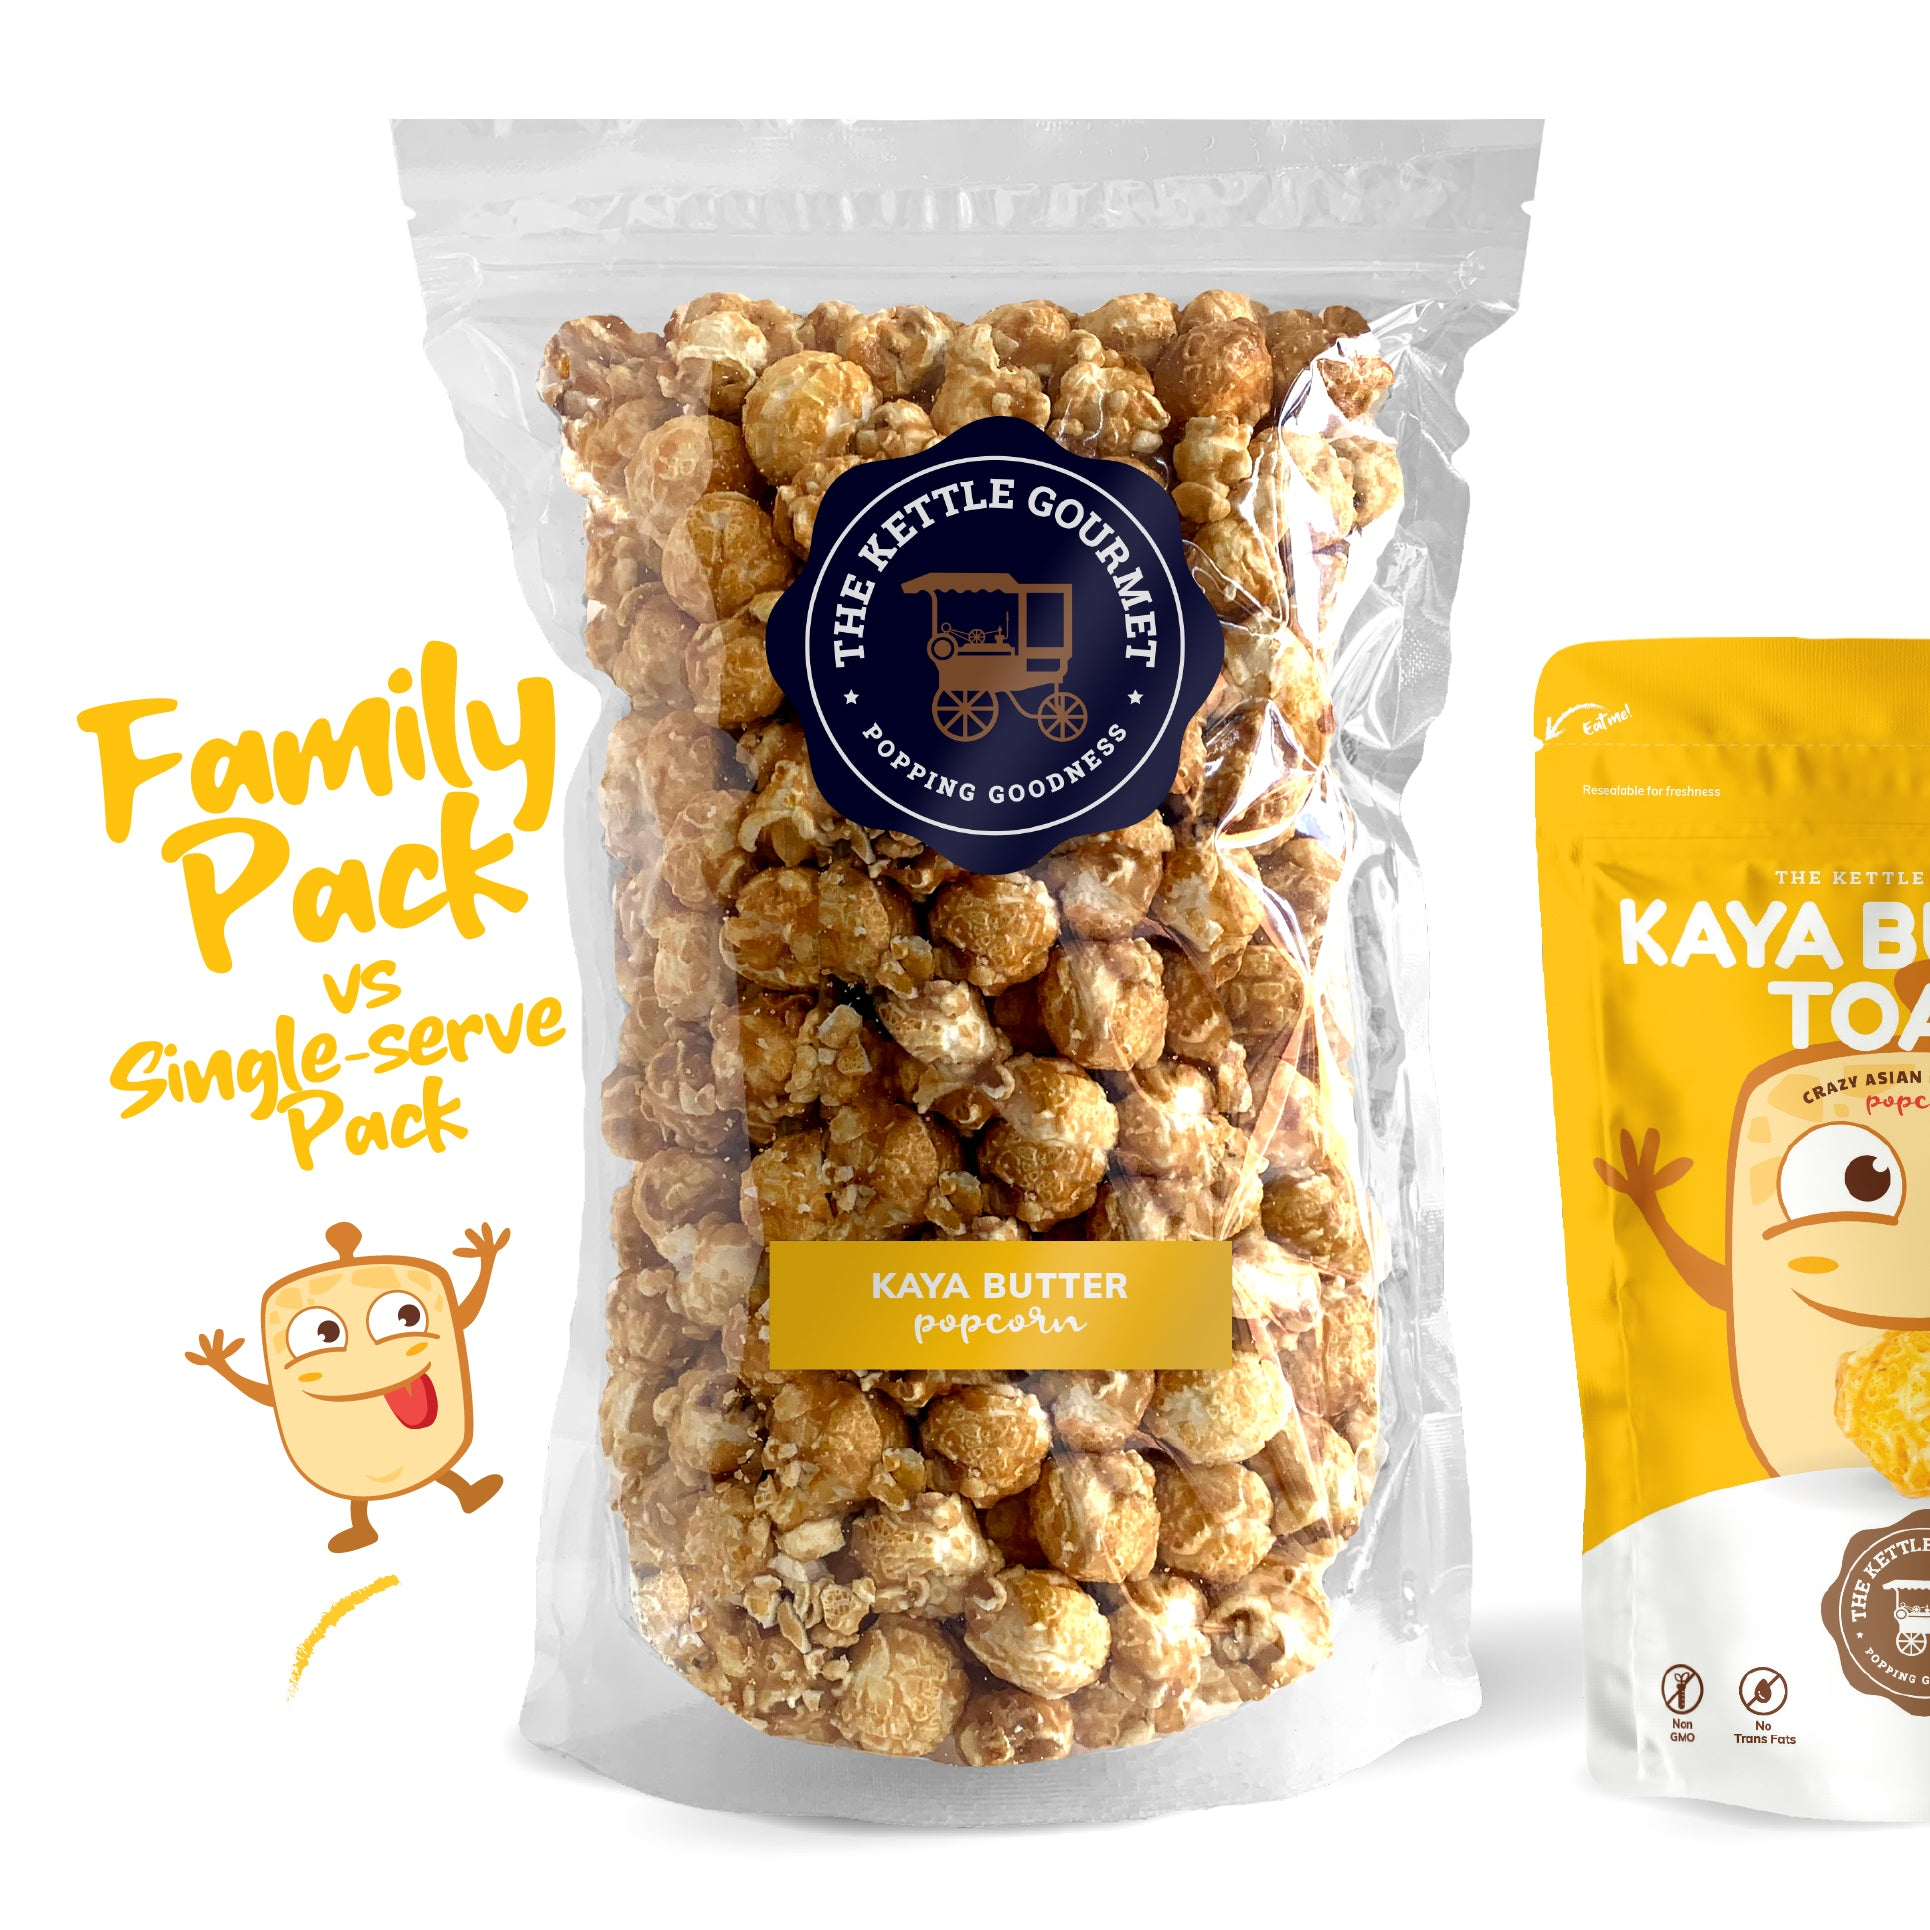 TKG Kaya Butter Toast Flavoured Popcorn (Family Pack vs Single-serve)